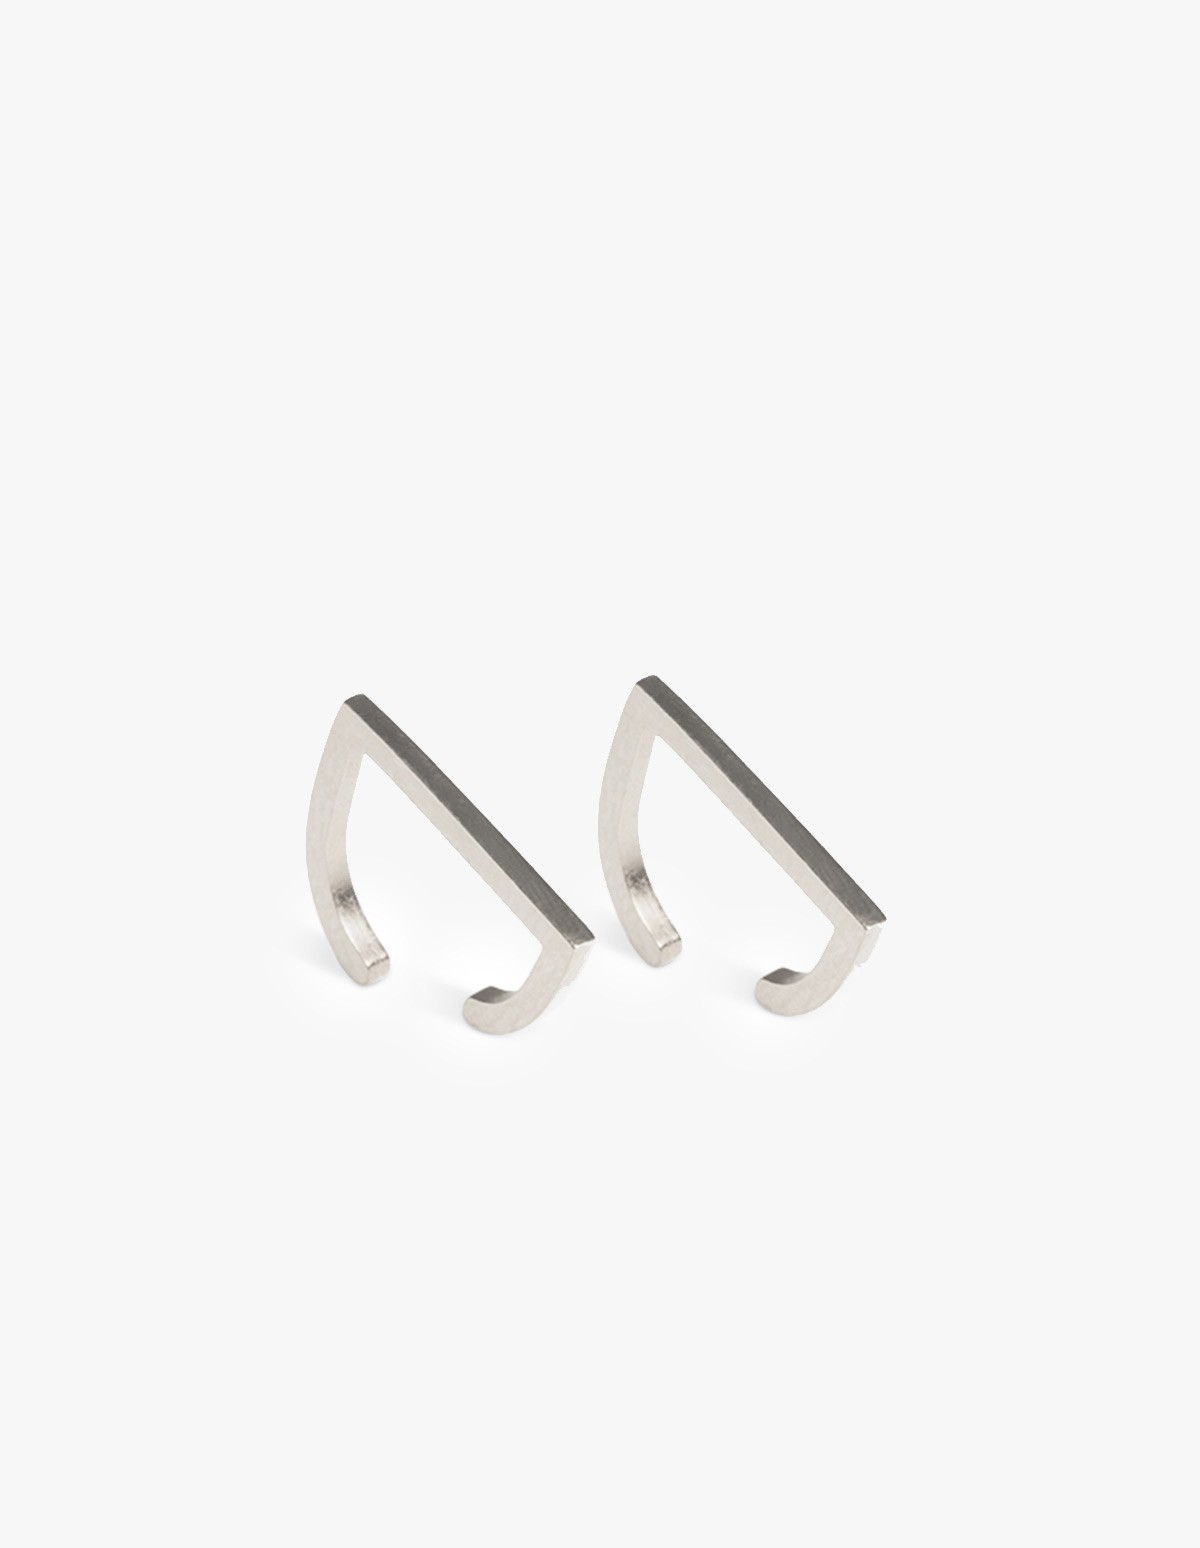 The Boyscouts Earring Rivet Silver - Pair  in Silver